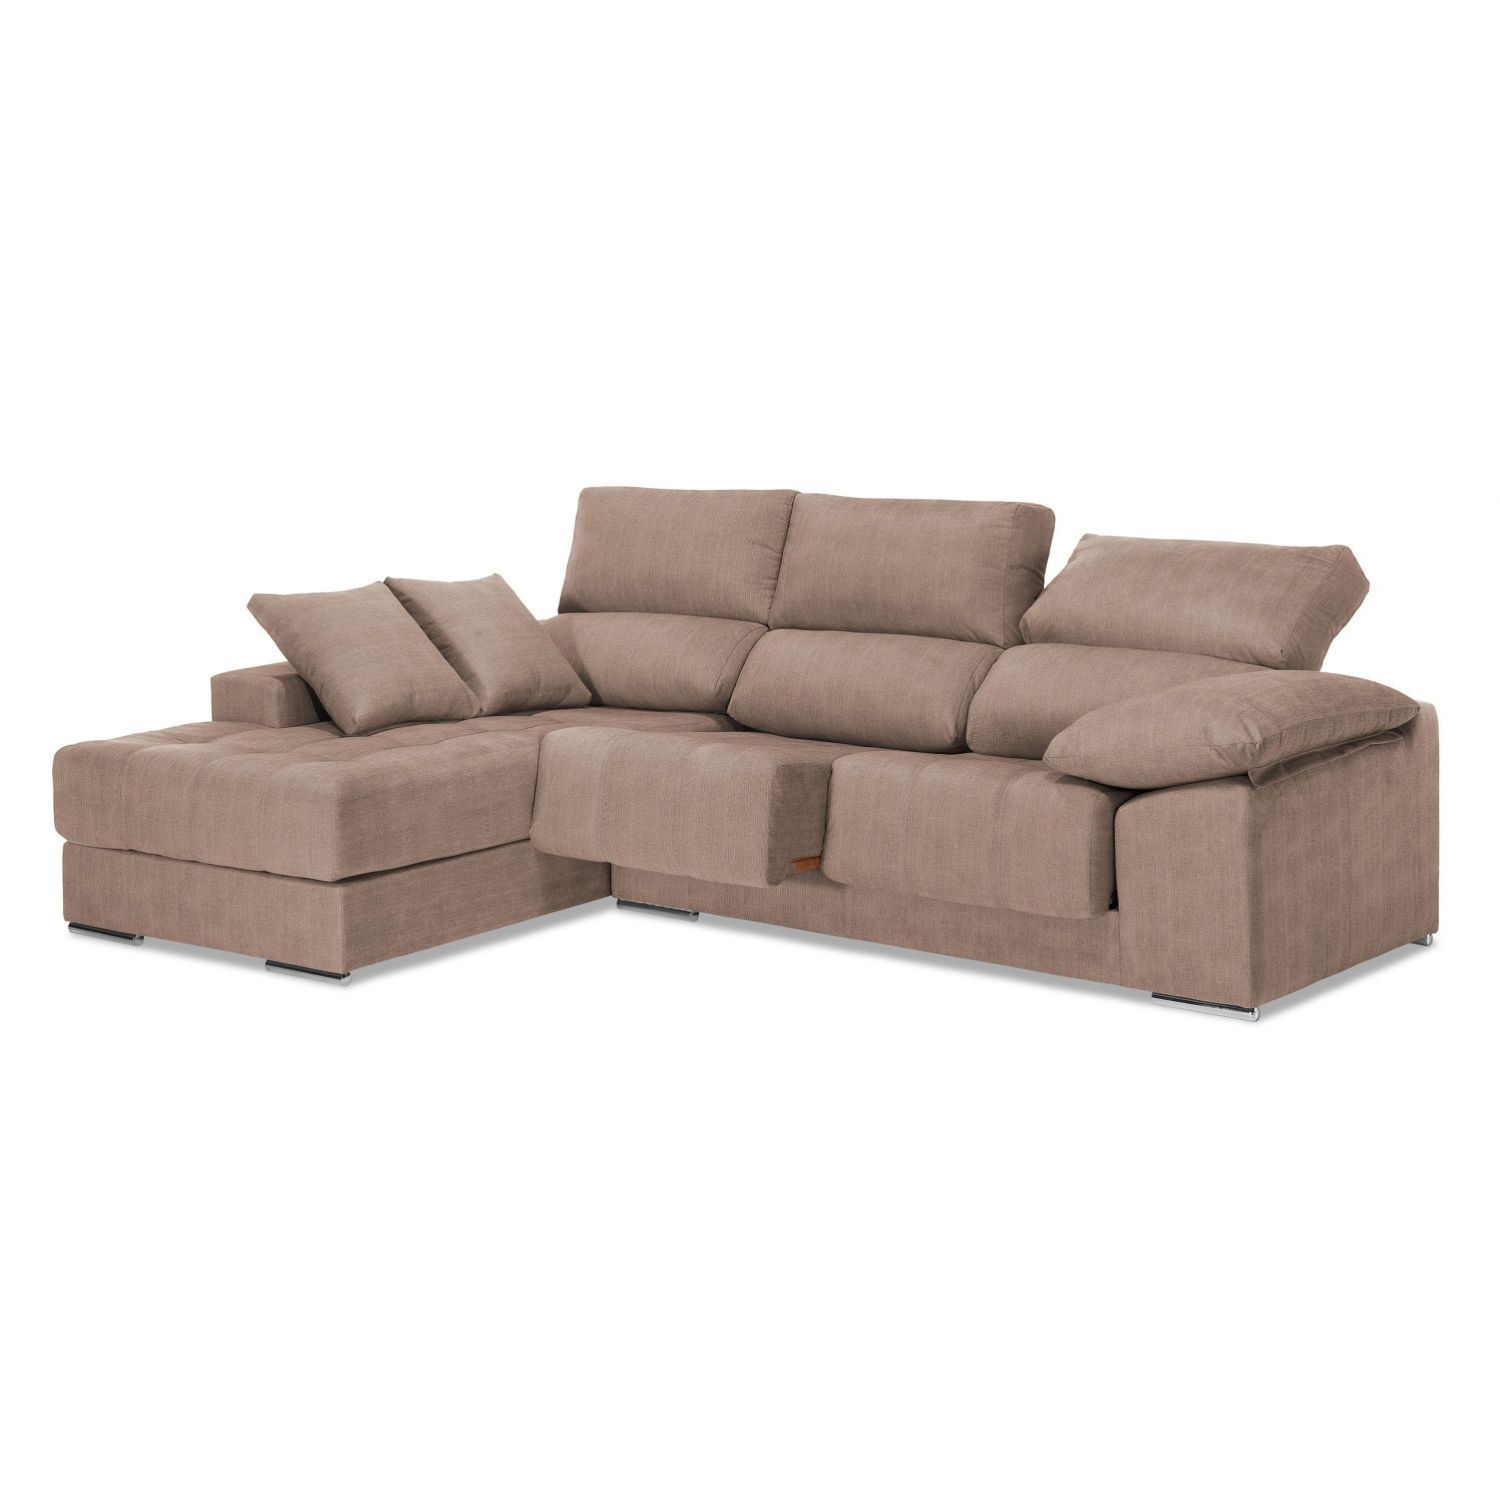 Chaiselongue alta calidad reclinable extensible 260 cm for Sofas de alta calidad